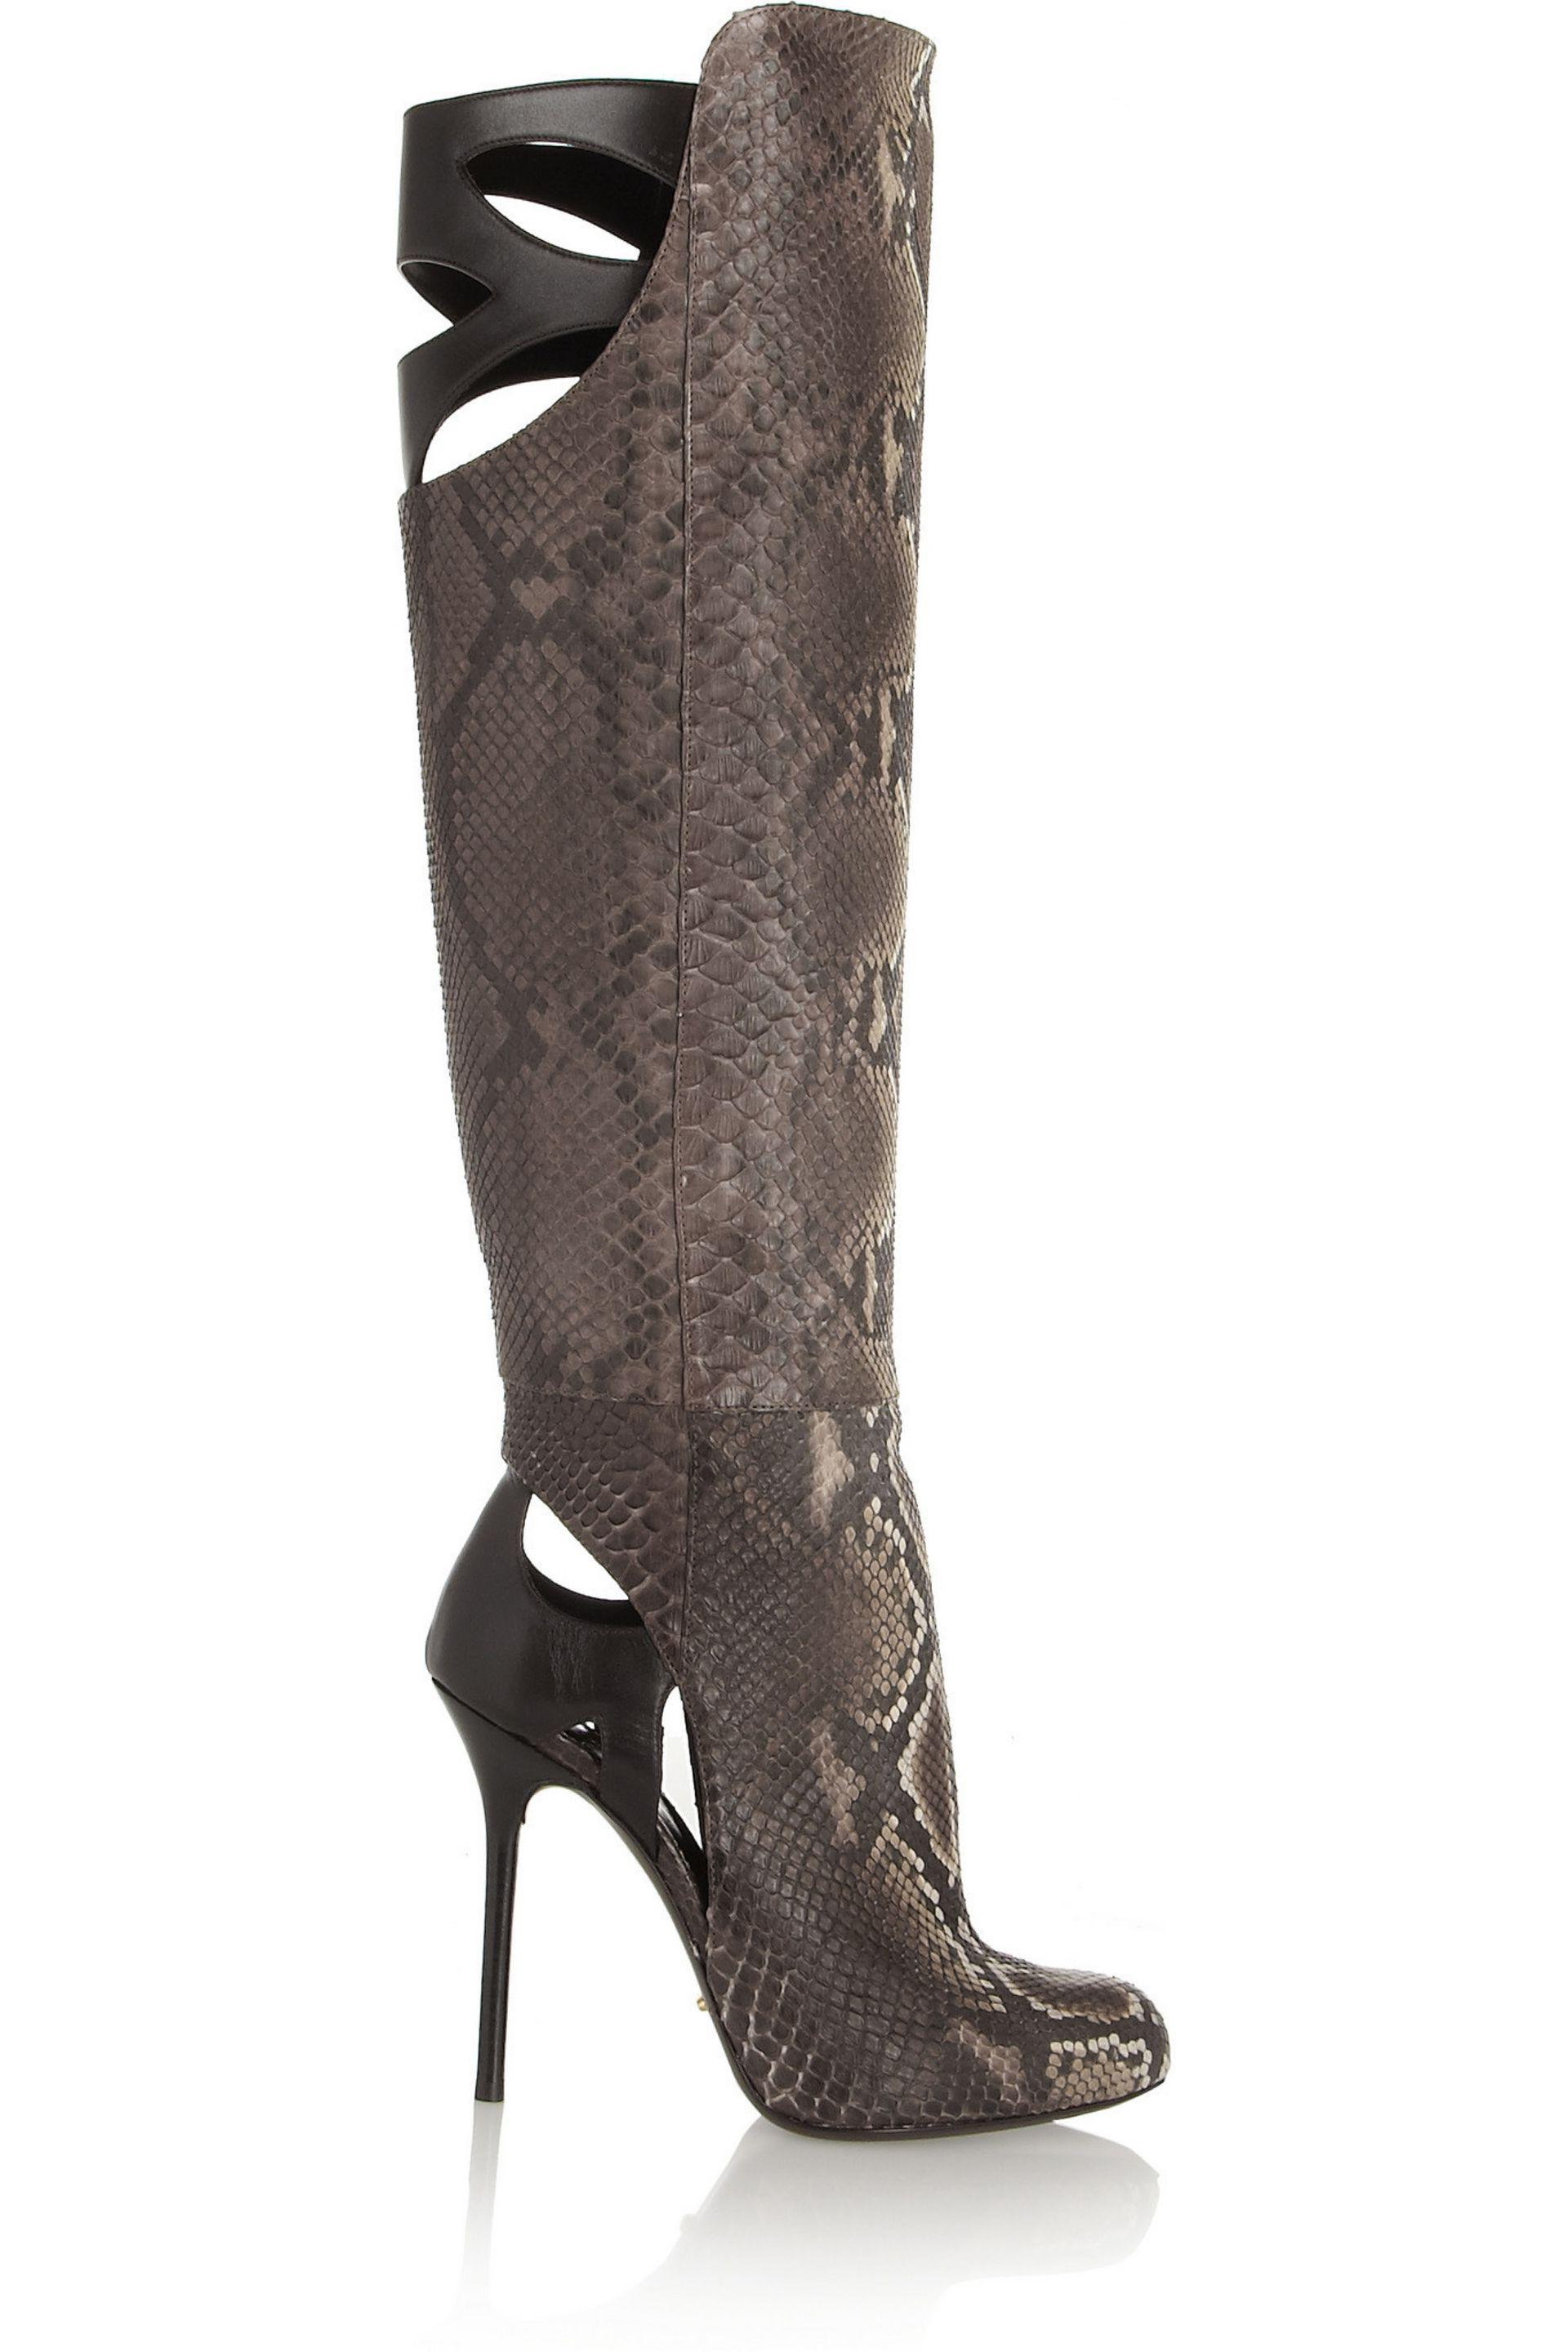 00e45c821c0 Sergio Rossi Cutout Python And Leather Knee Boots in Brown - Lyst